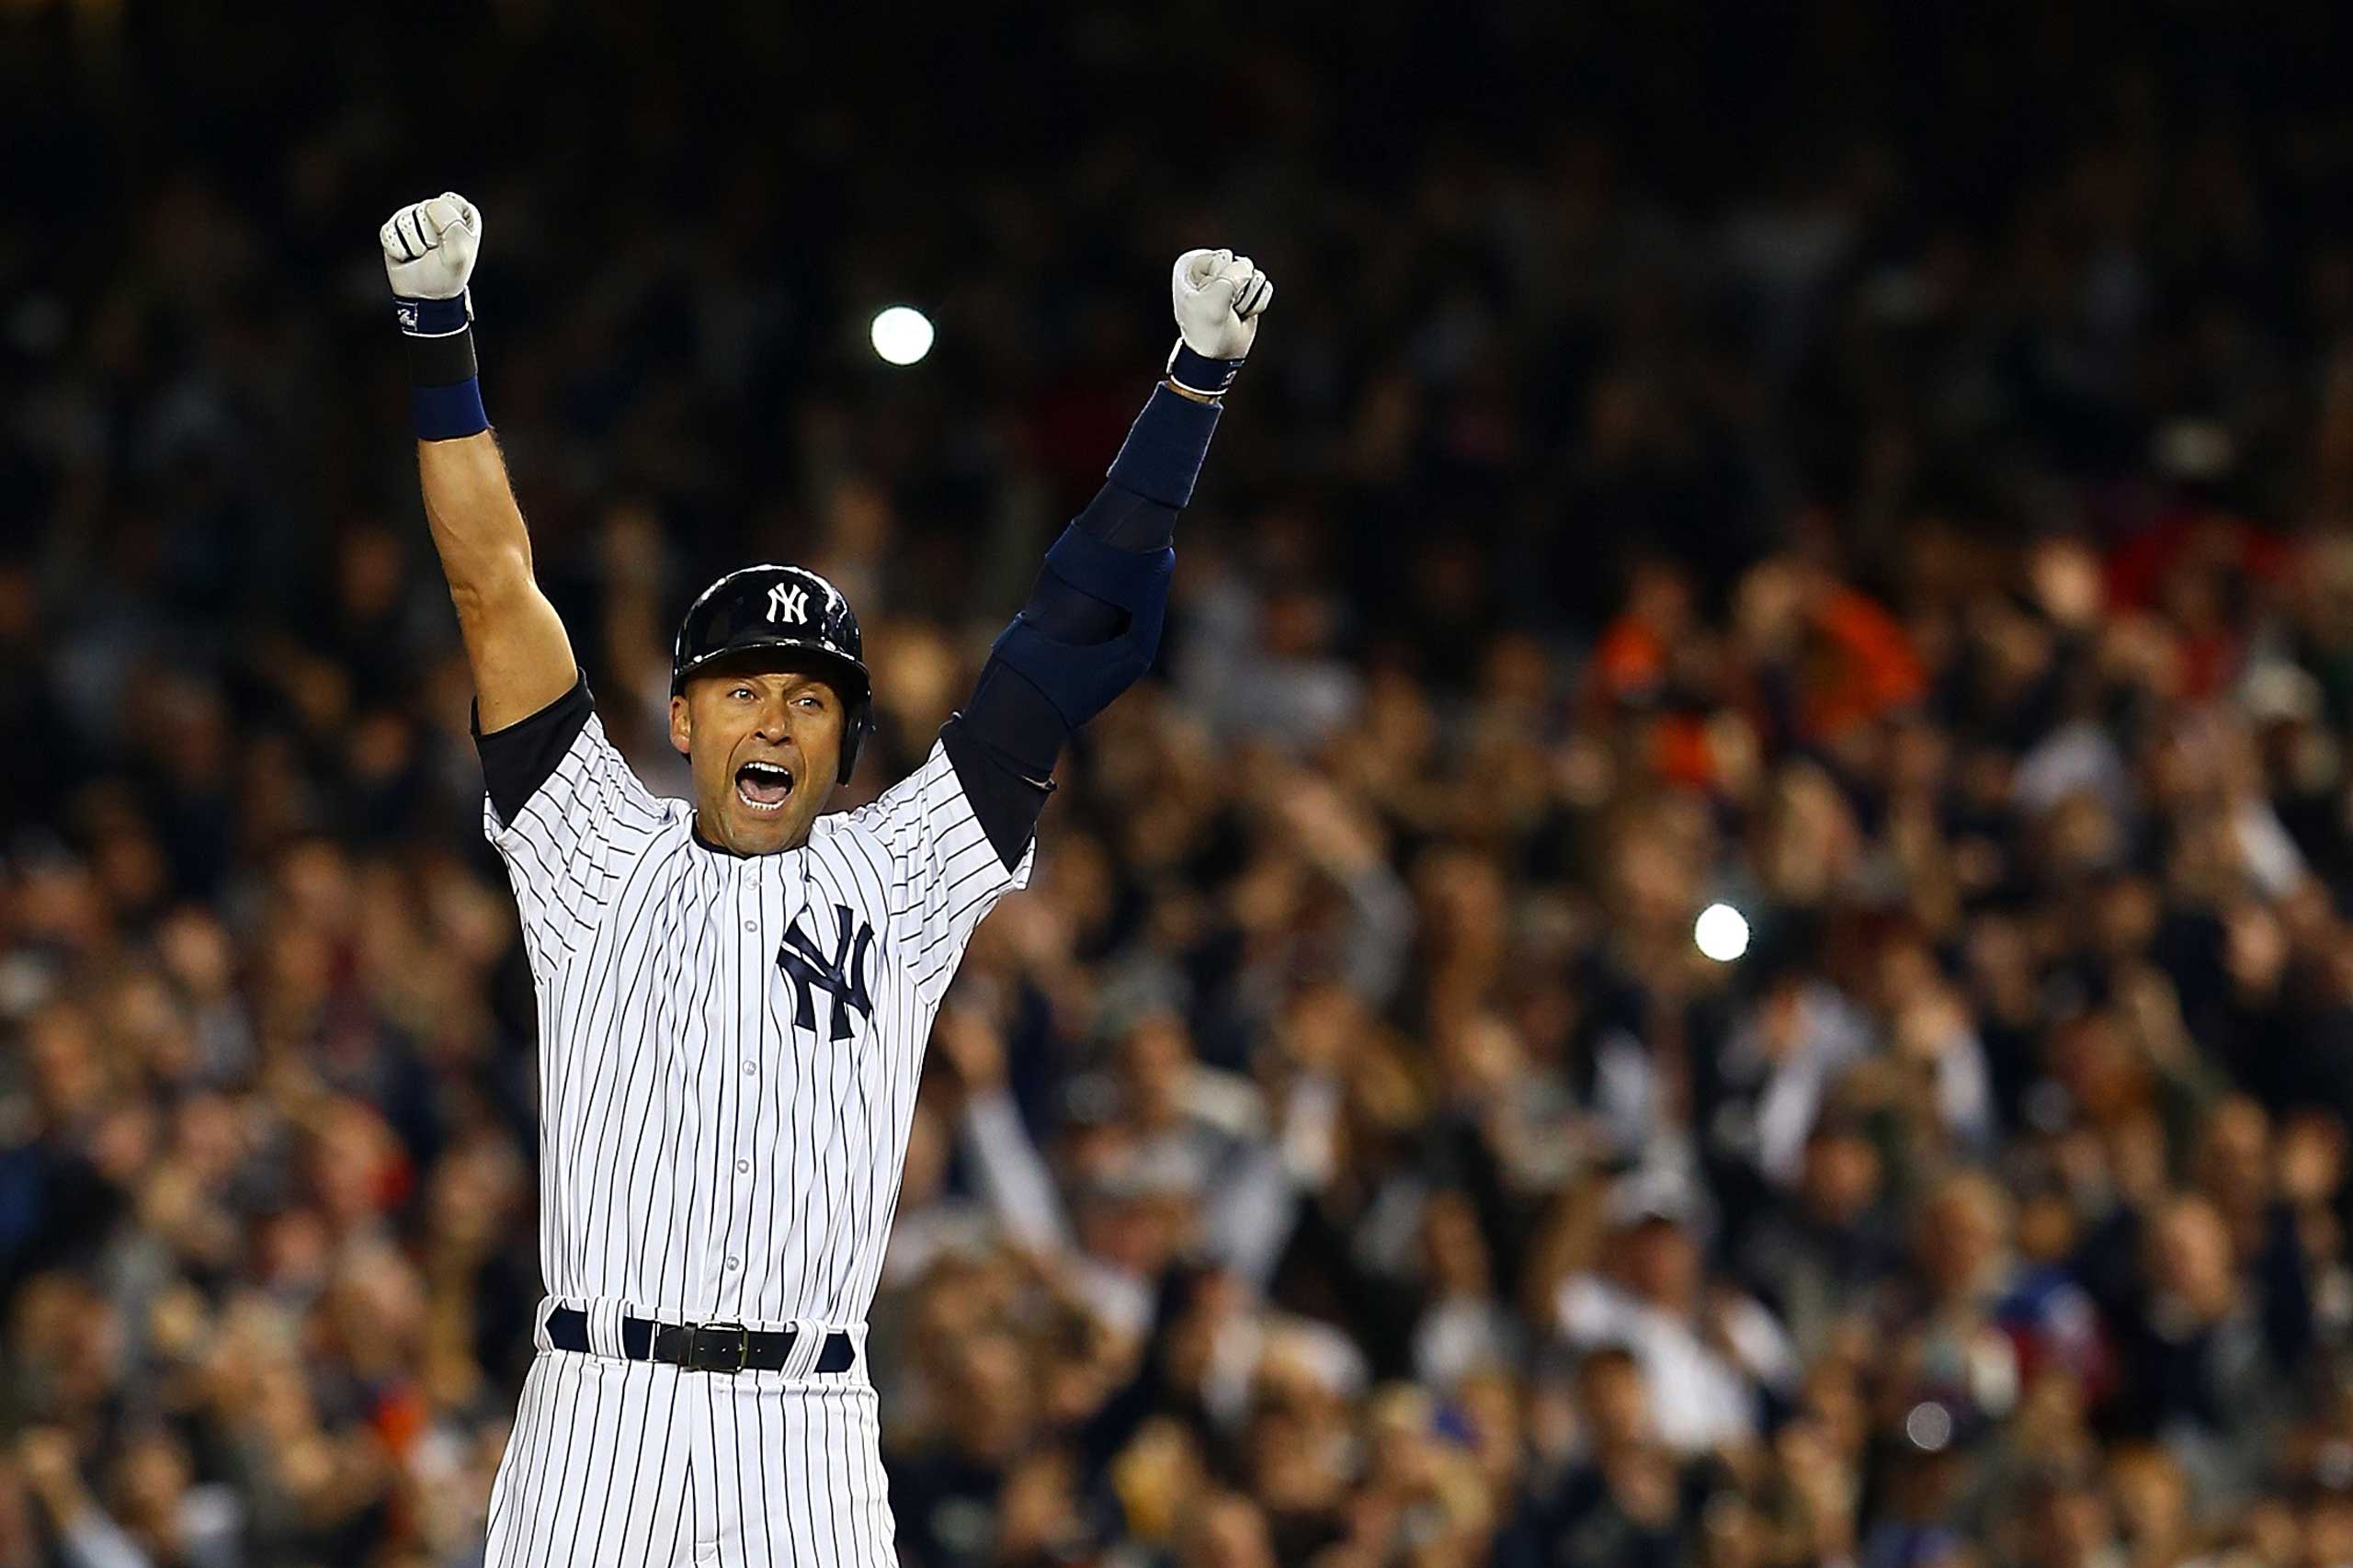 Derek Jeter celebrates after a game winning RBI hit in the ninth inning against the Baltimore Orioles in his last game ever at Yankee Stadium on Sept. 25, 2014 .